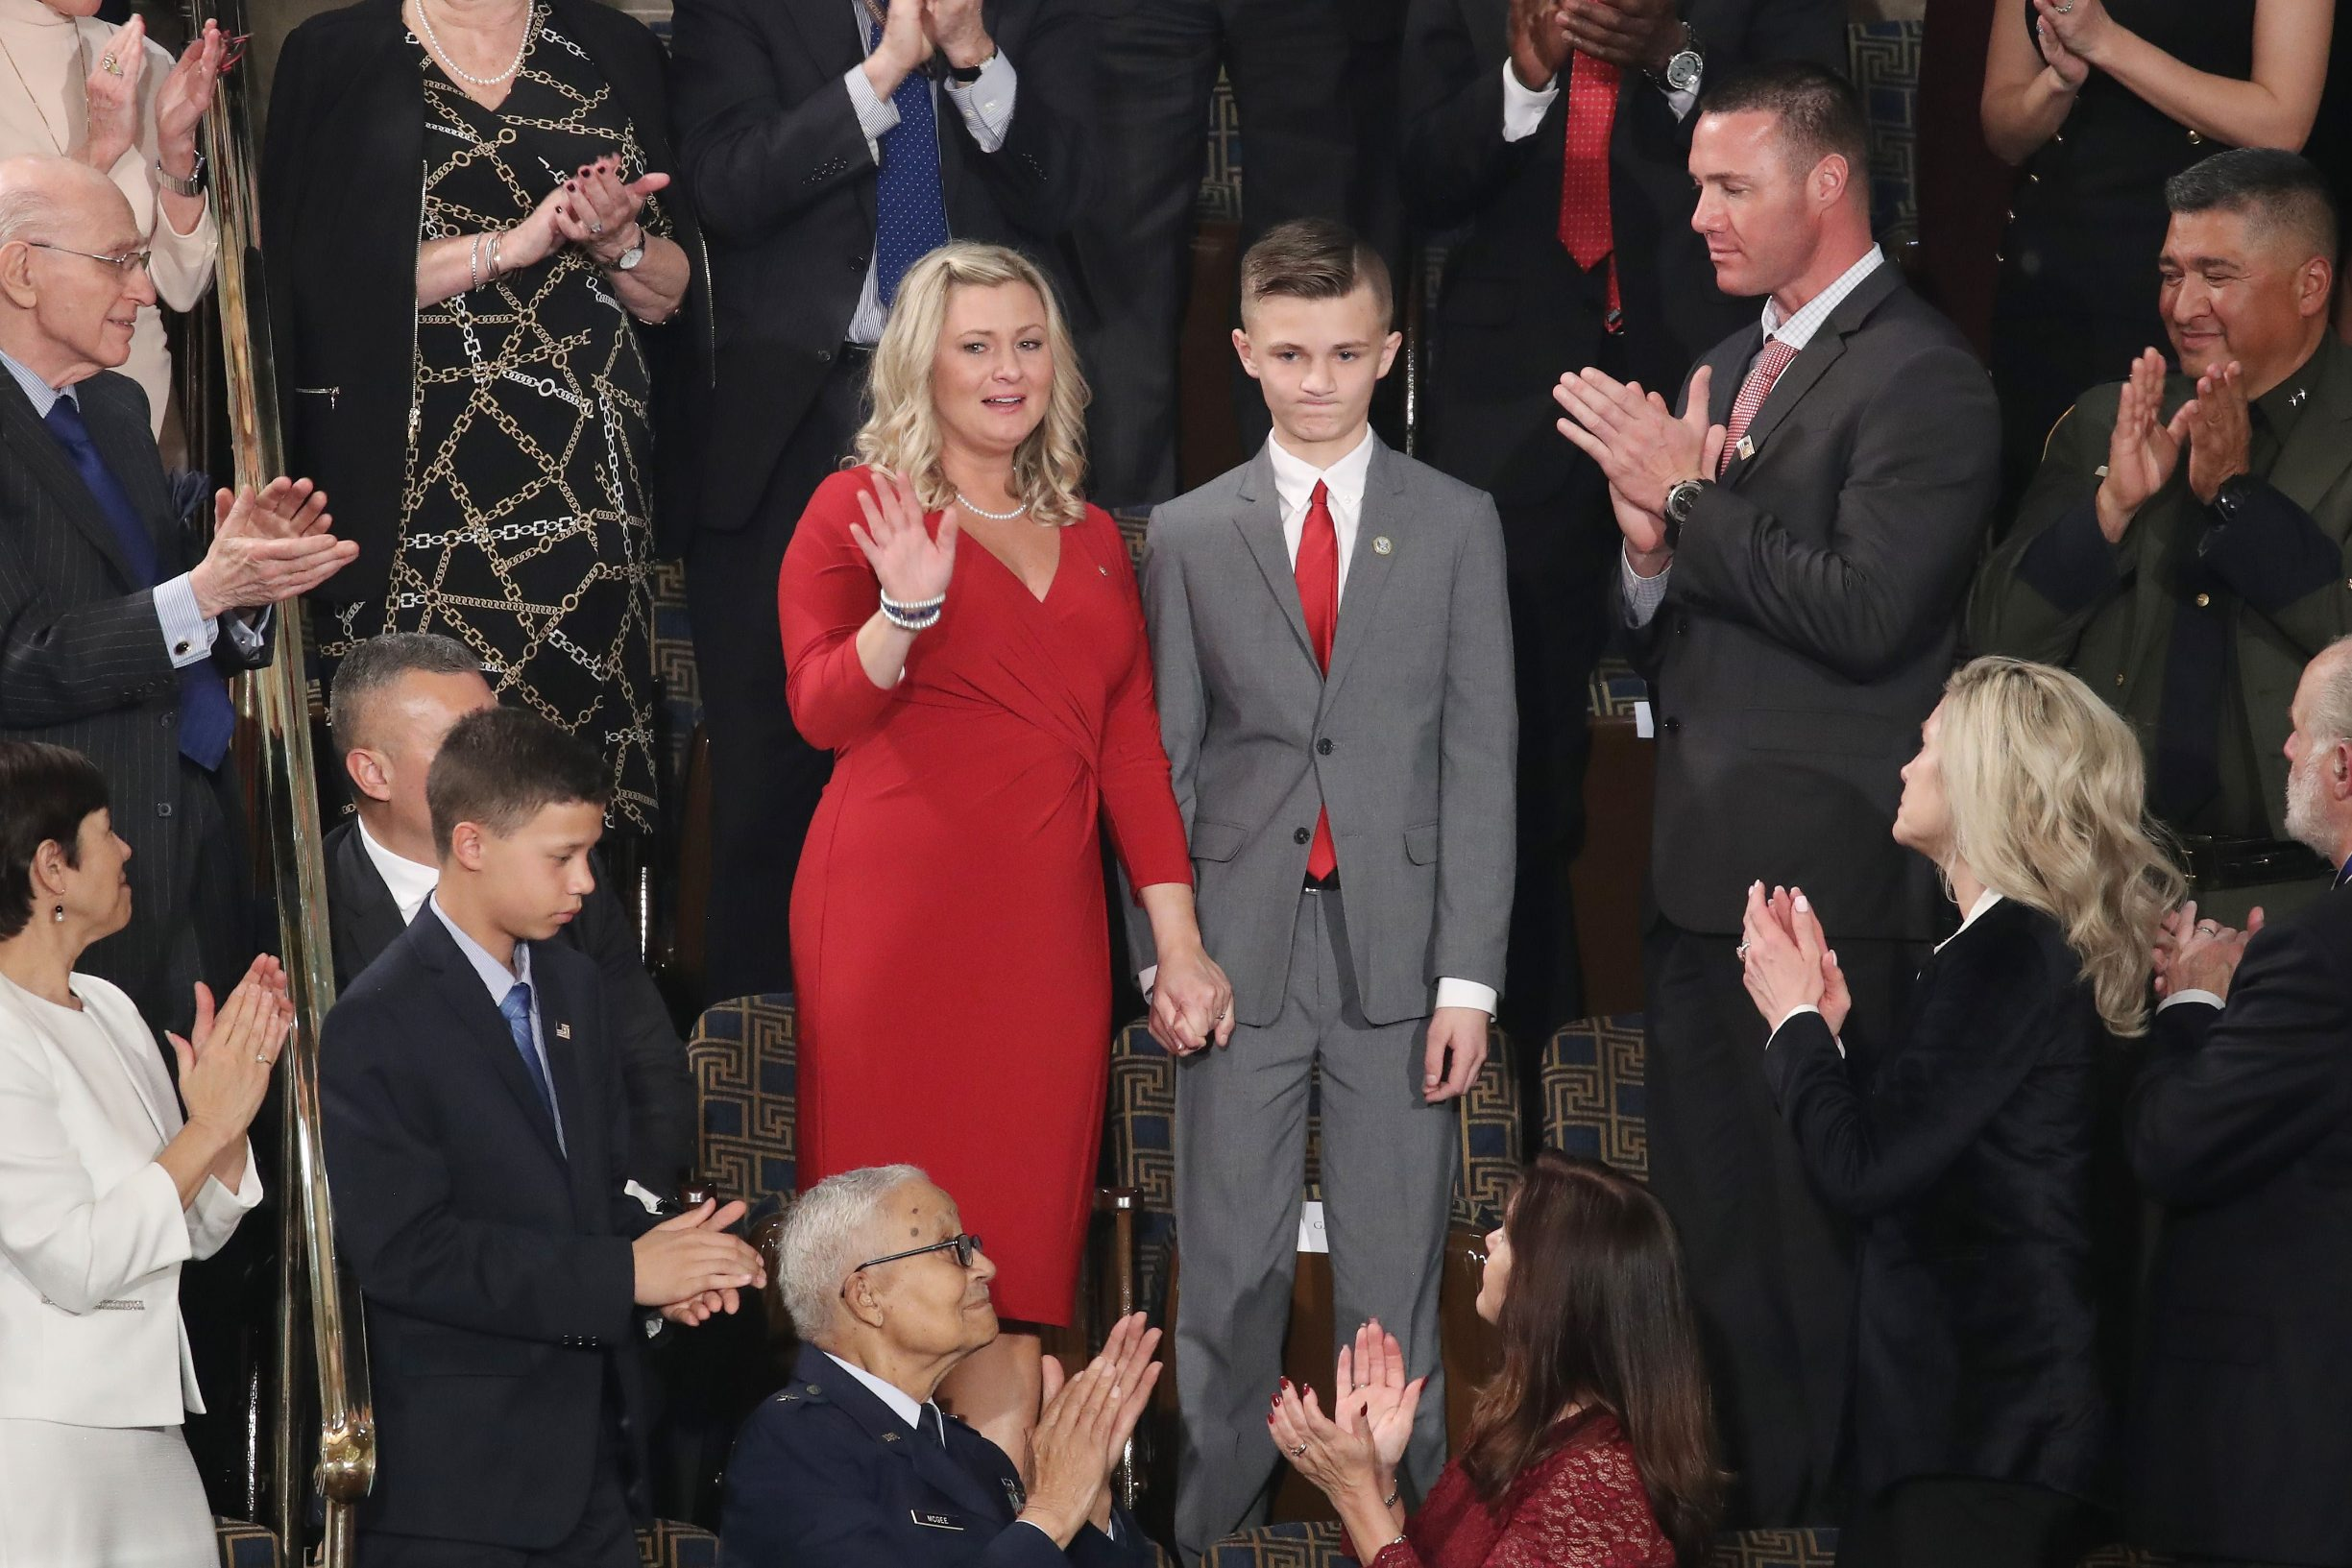 WASHINGTON, DC - FEBRUARY 04: Kelli Hake, the widow of a U.S. soldier killed in Iraq in 2008, atends the State of the Union address with her son, Gage Hake, in the chamber of the U.S. House of Representatives on February 04, 2020 in Washington, DC. President Trump delivers his third State of the Union to the nation the night before the U.S. Senate is set to vote in his impeachment trial.   Drew Angerer/Getty Images/AFP == FOR NEWSPAPERS, INTERNET, TELCOS & TELEVISION USE ONLY ==